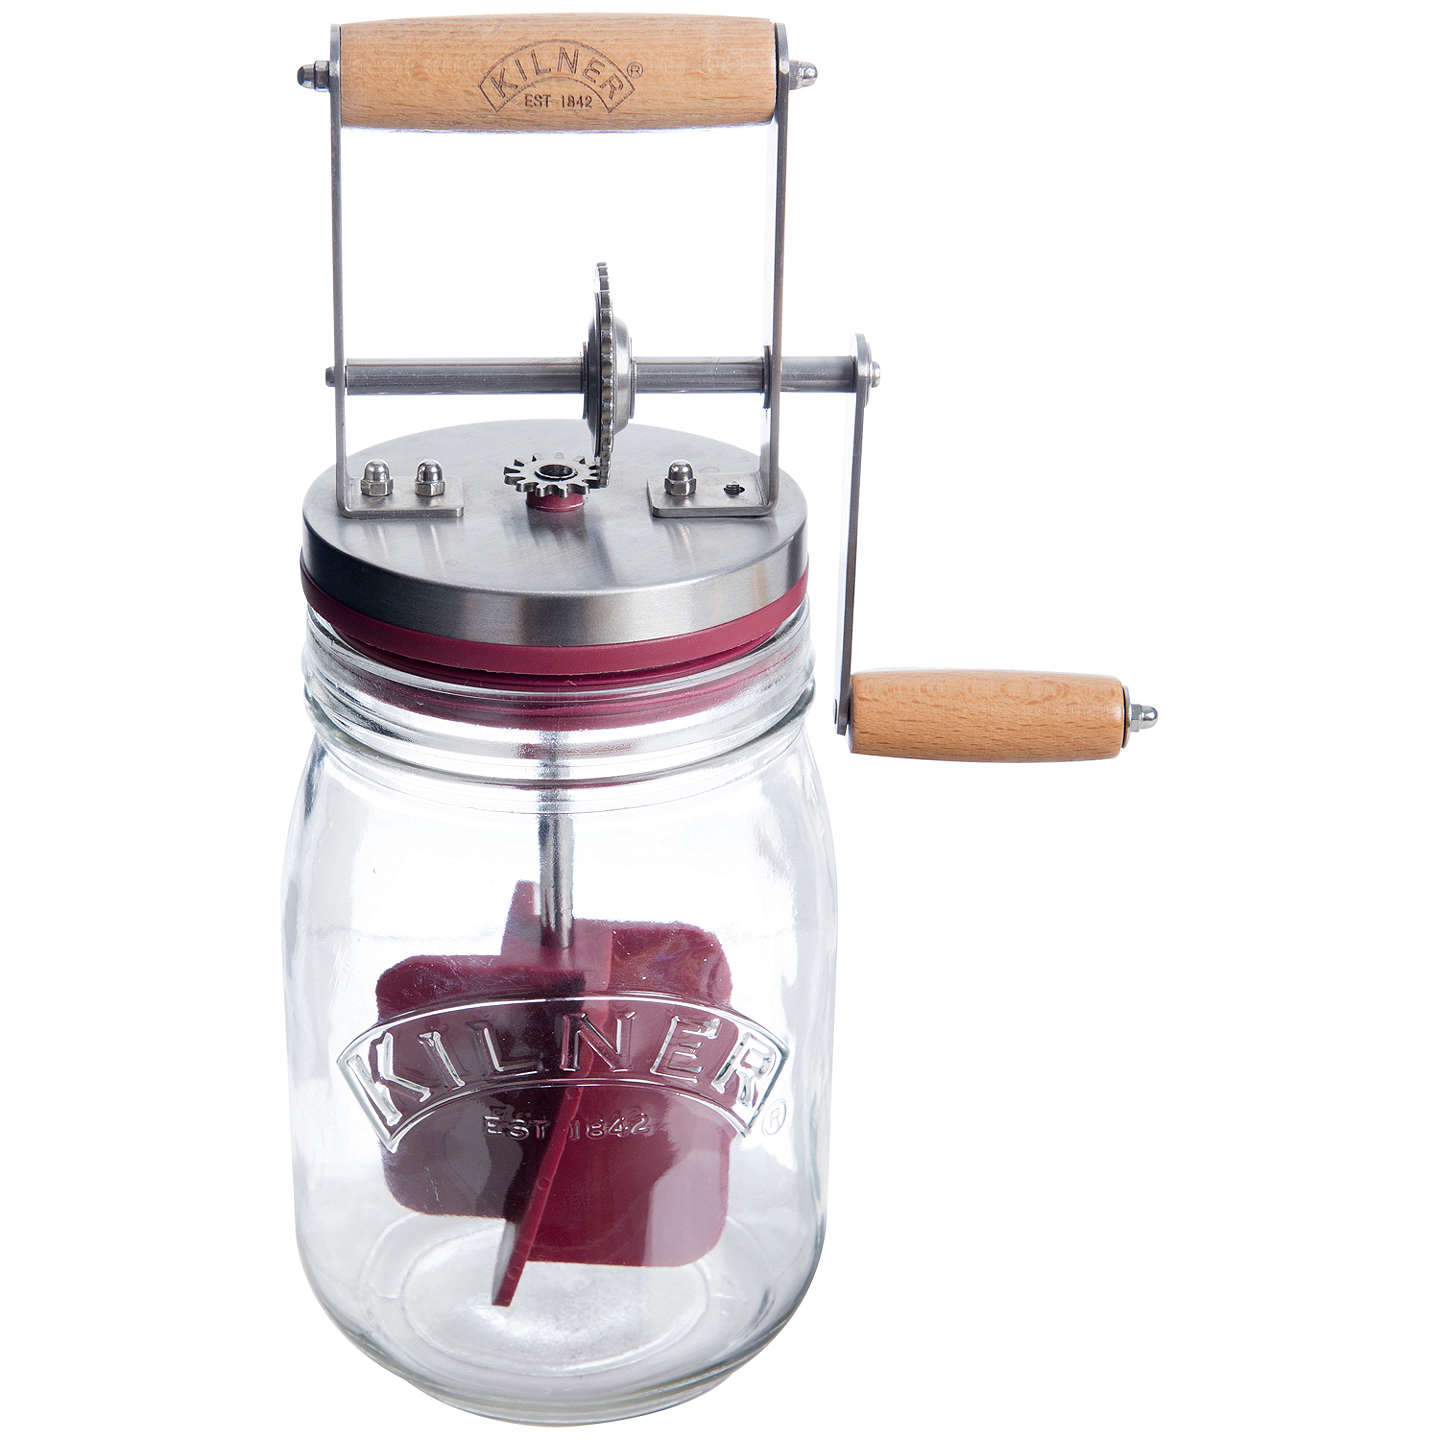 BuyKilner Butter Churner Online at johnlewis.com